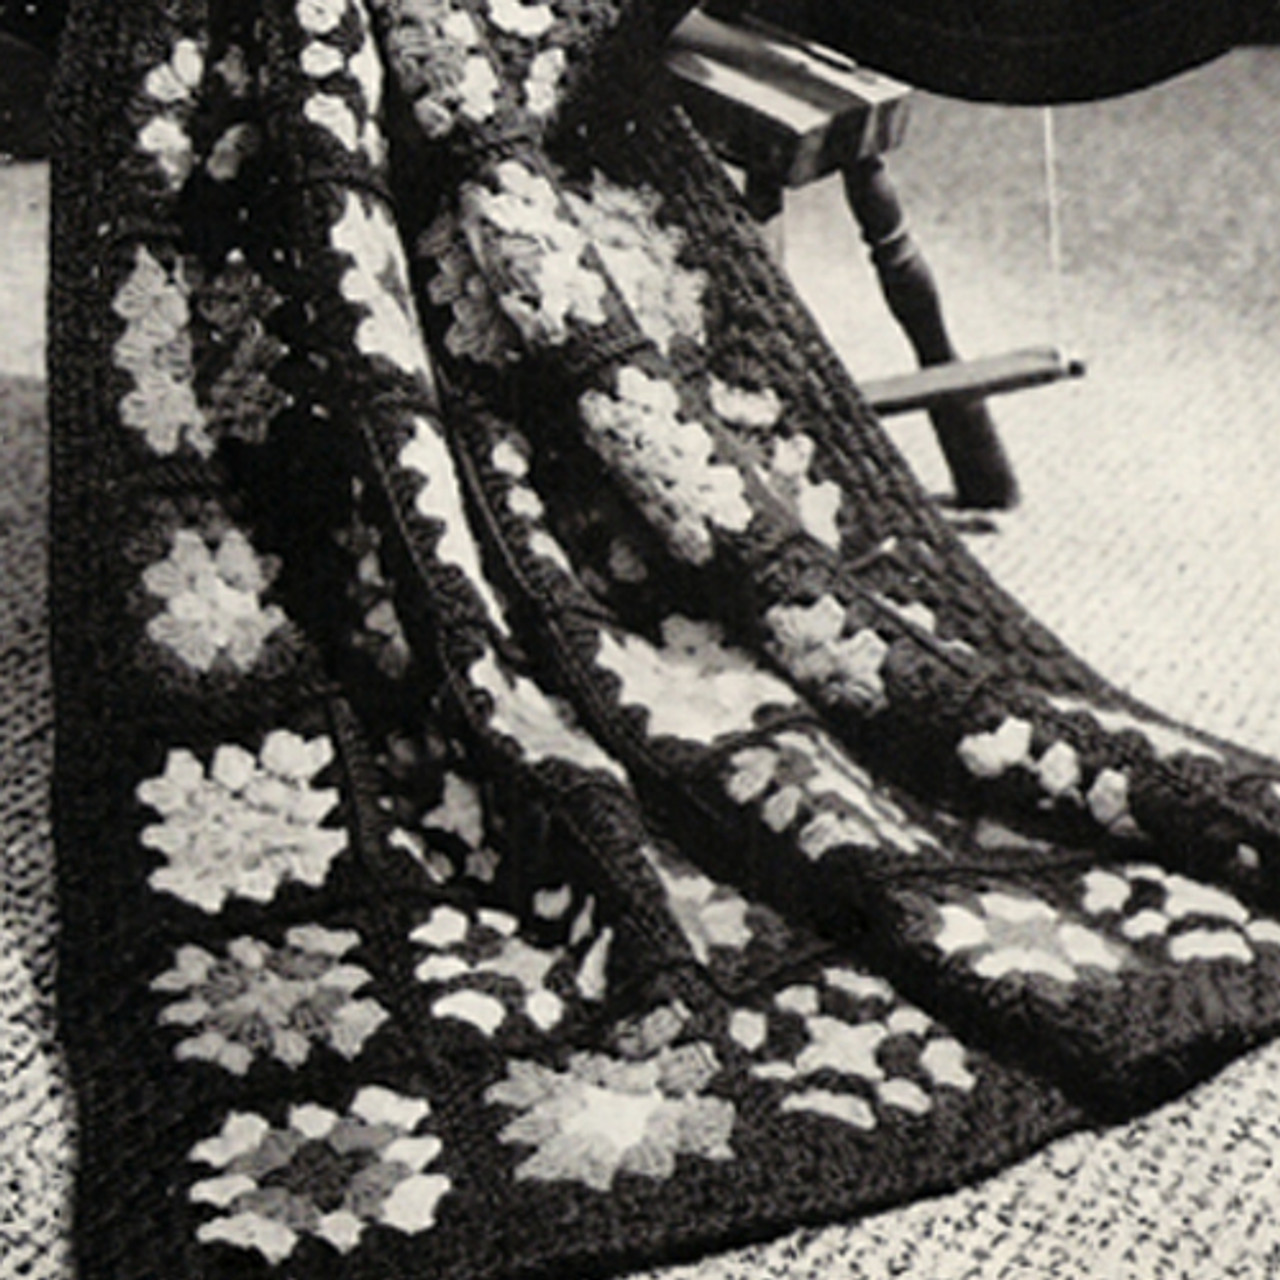 Vintage Crocheted Granny Square Afghan Pattern